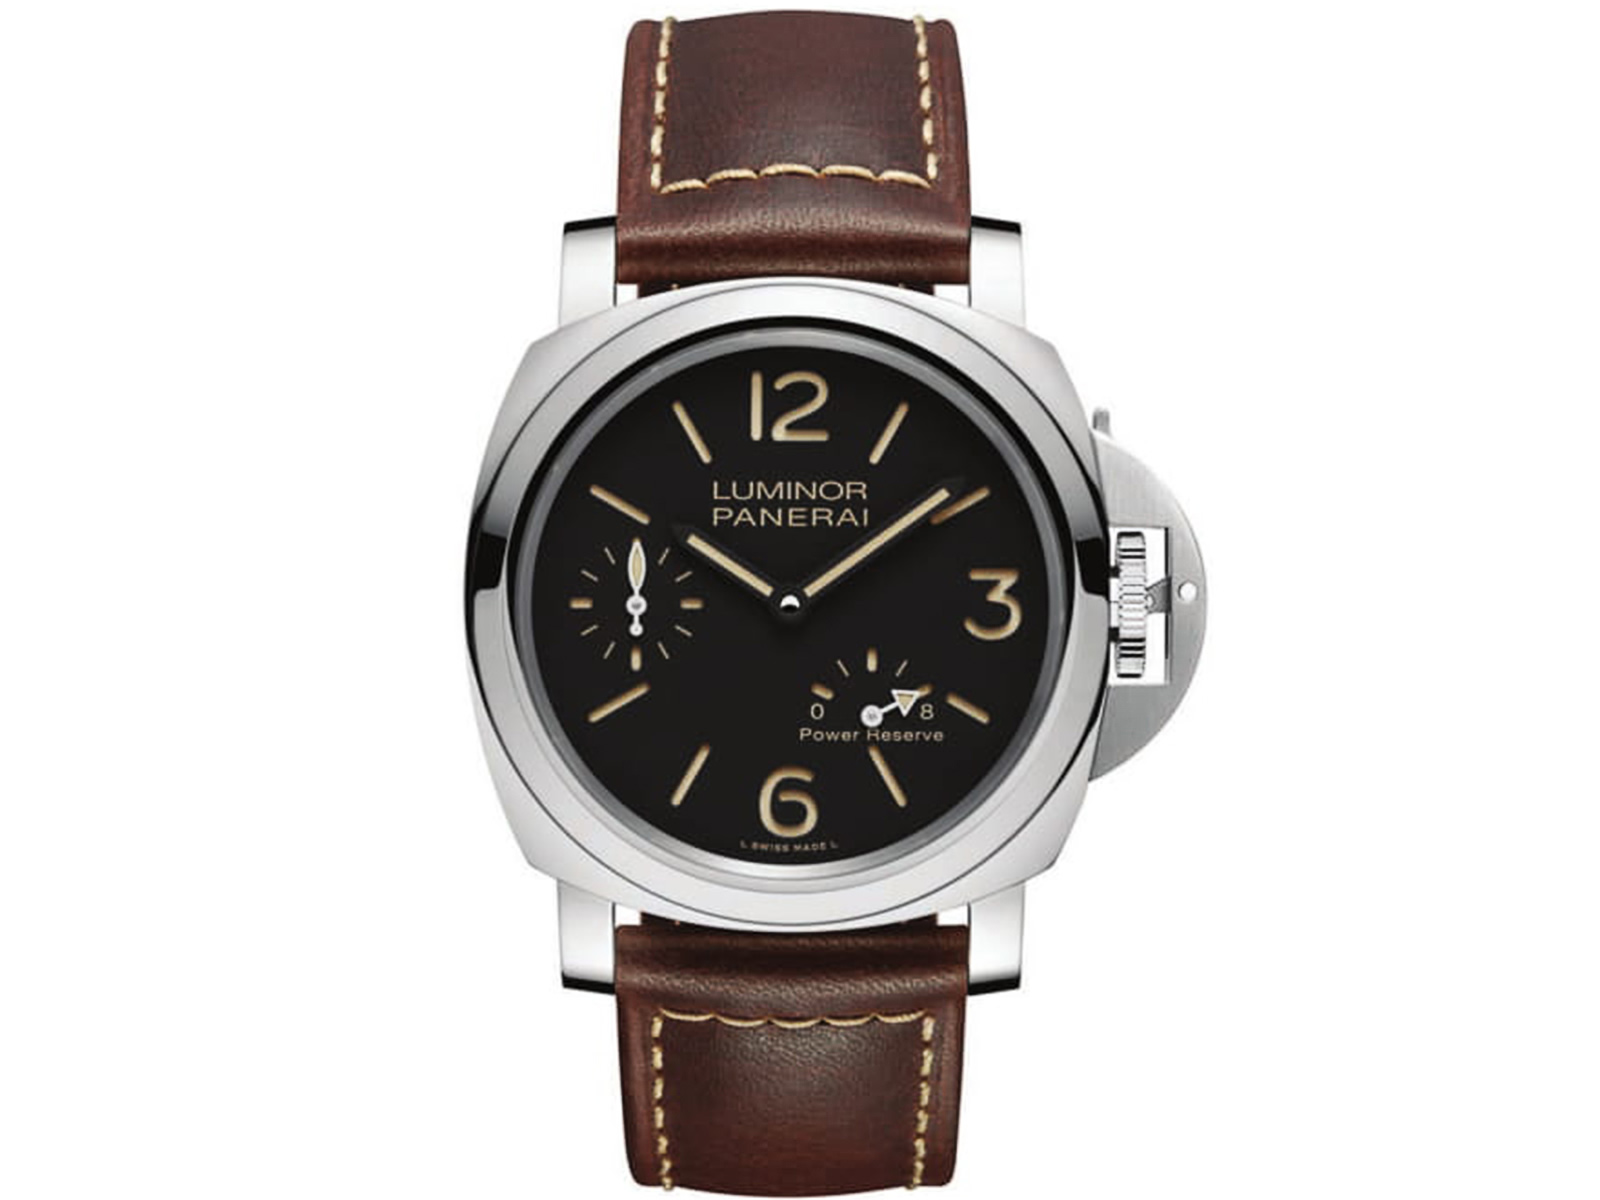 pam00795-officine-panerai-luminor-8-days-power-reserve-acciaio-44mm-2-.jpg